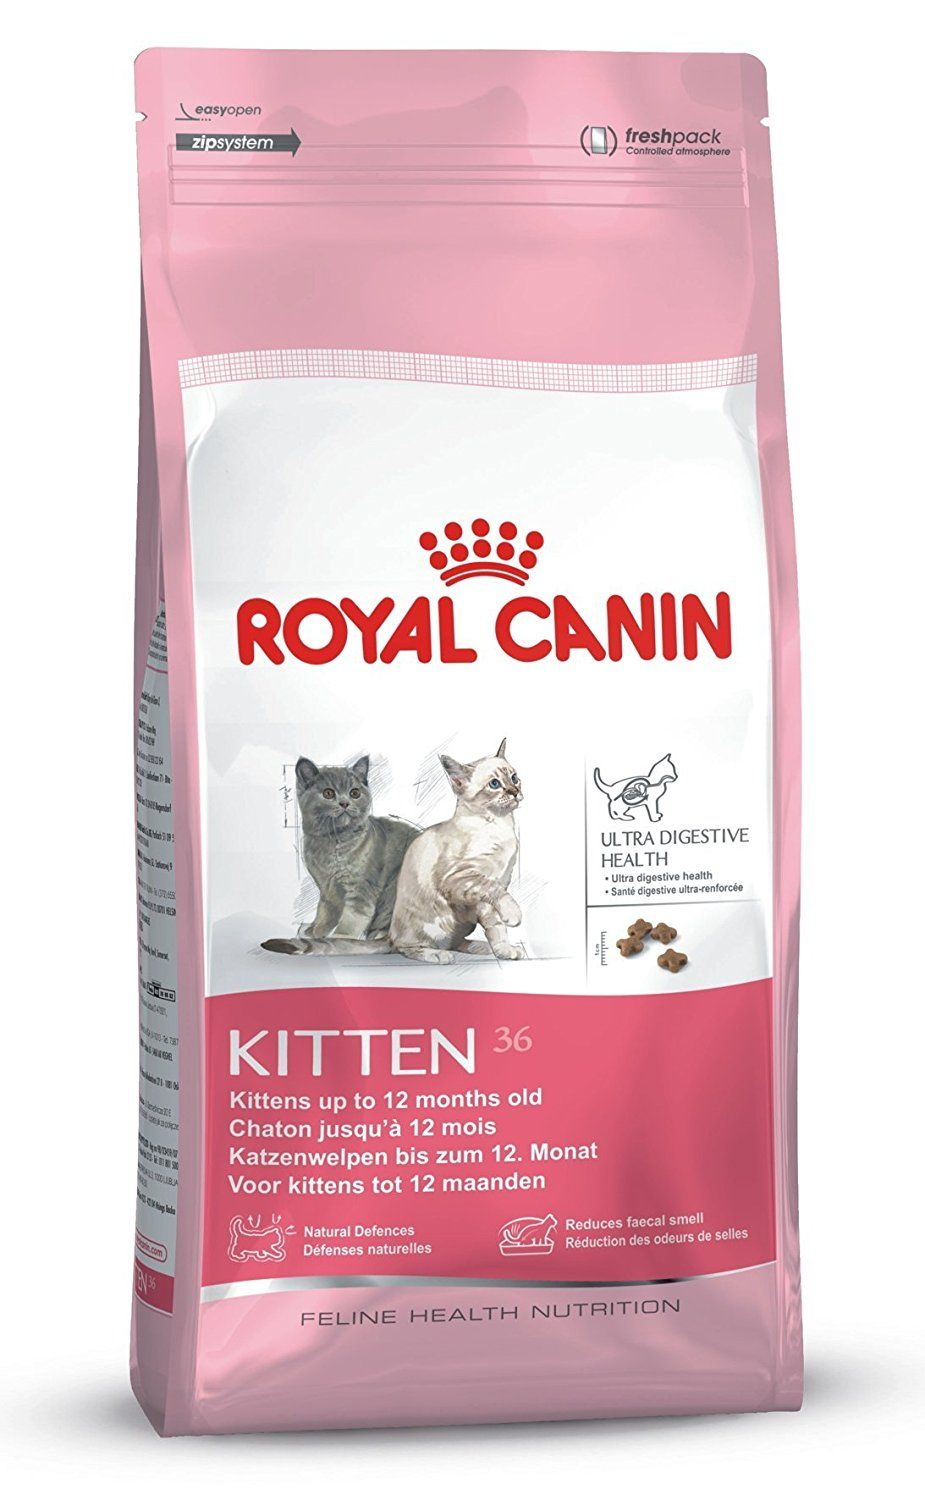 Royal Canin Kitten 36 Dry Cat Food 400 G Save This Wonderfull Item Cat Food Kitten Food Dry Cat Food Cat Food